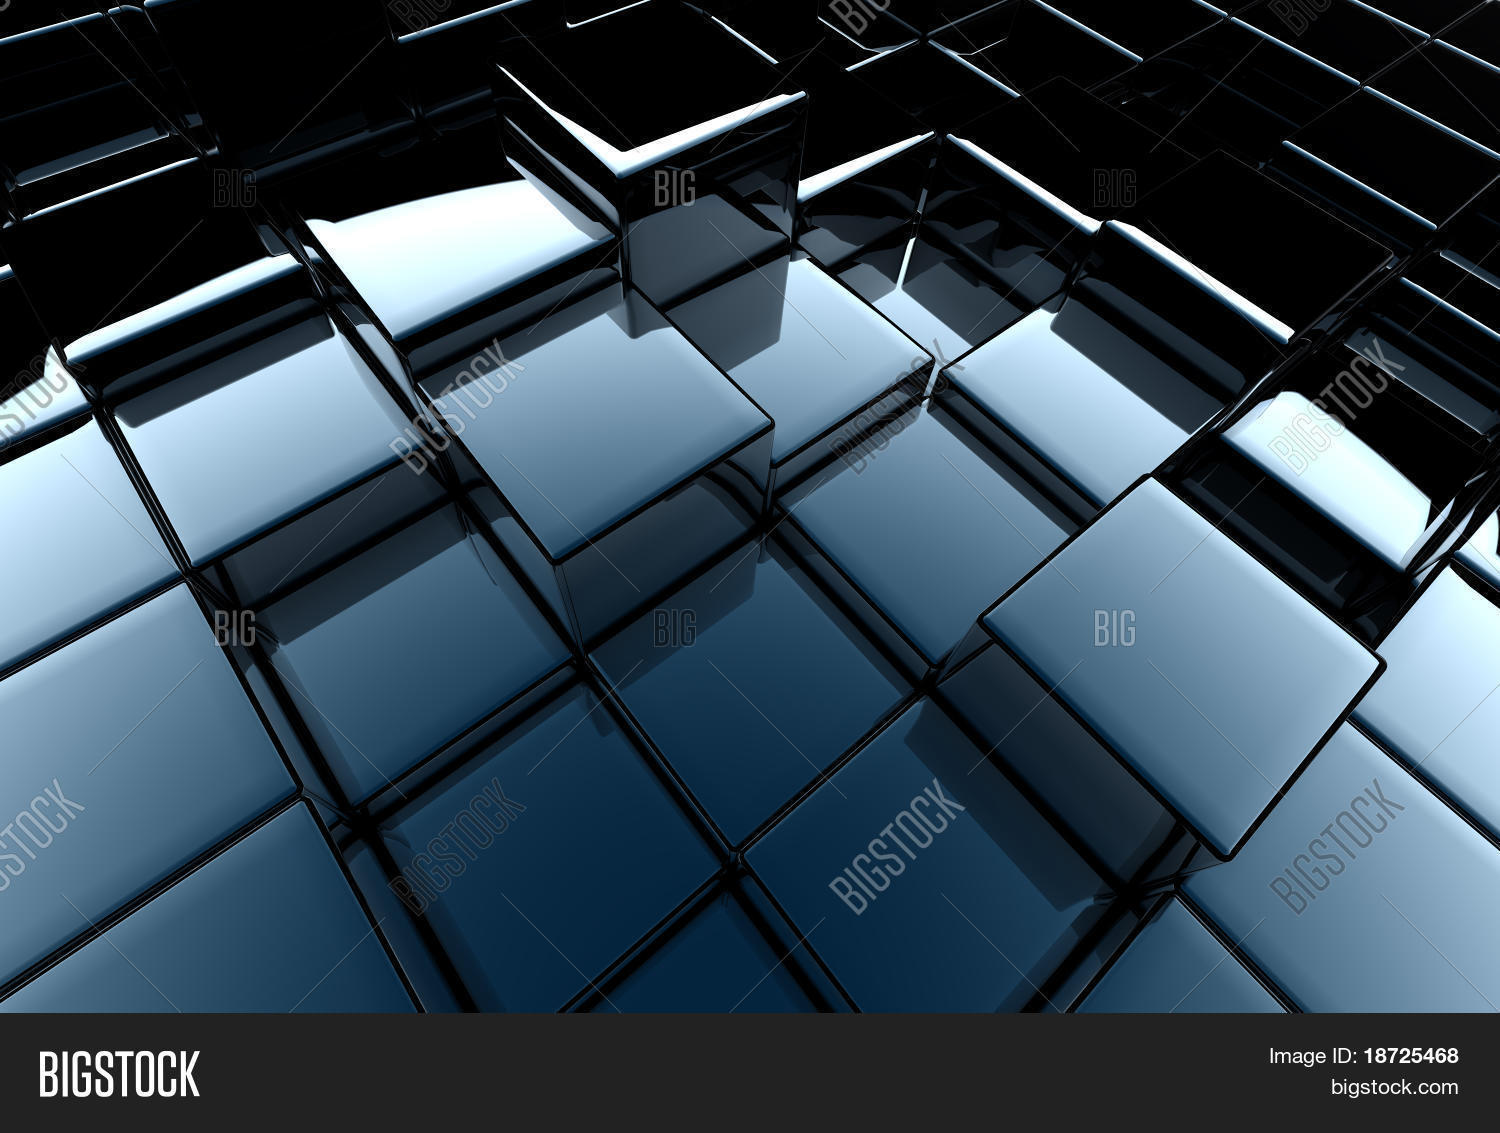 3d building,abstract,abstract background,abstract backgrounds,architecture,background,background abstract,backgrounds abstract,black,black abstract background,block,box,building,business,business background,business backgrounds,center,city,city background,concept,construction,corporate,corporate background,cube,design,diagonal,digital,graphic,gray abstract background,grey,group,illustration,light,metal,metal background,metallic background,modern,object,organization,pattern,reflection,render,row,science,science background,shadow,shape,silver,single,solution,square,steel,steel background,structure,success,technology